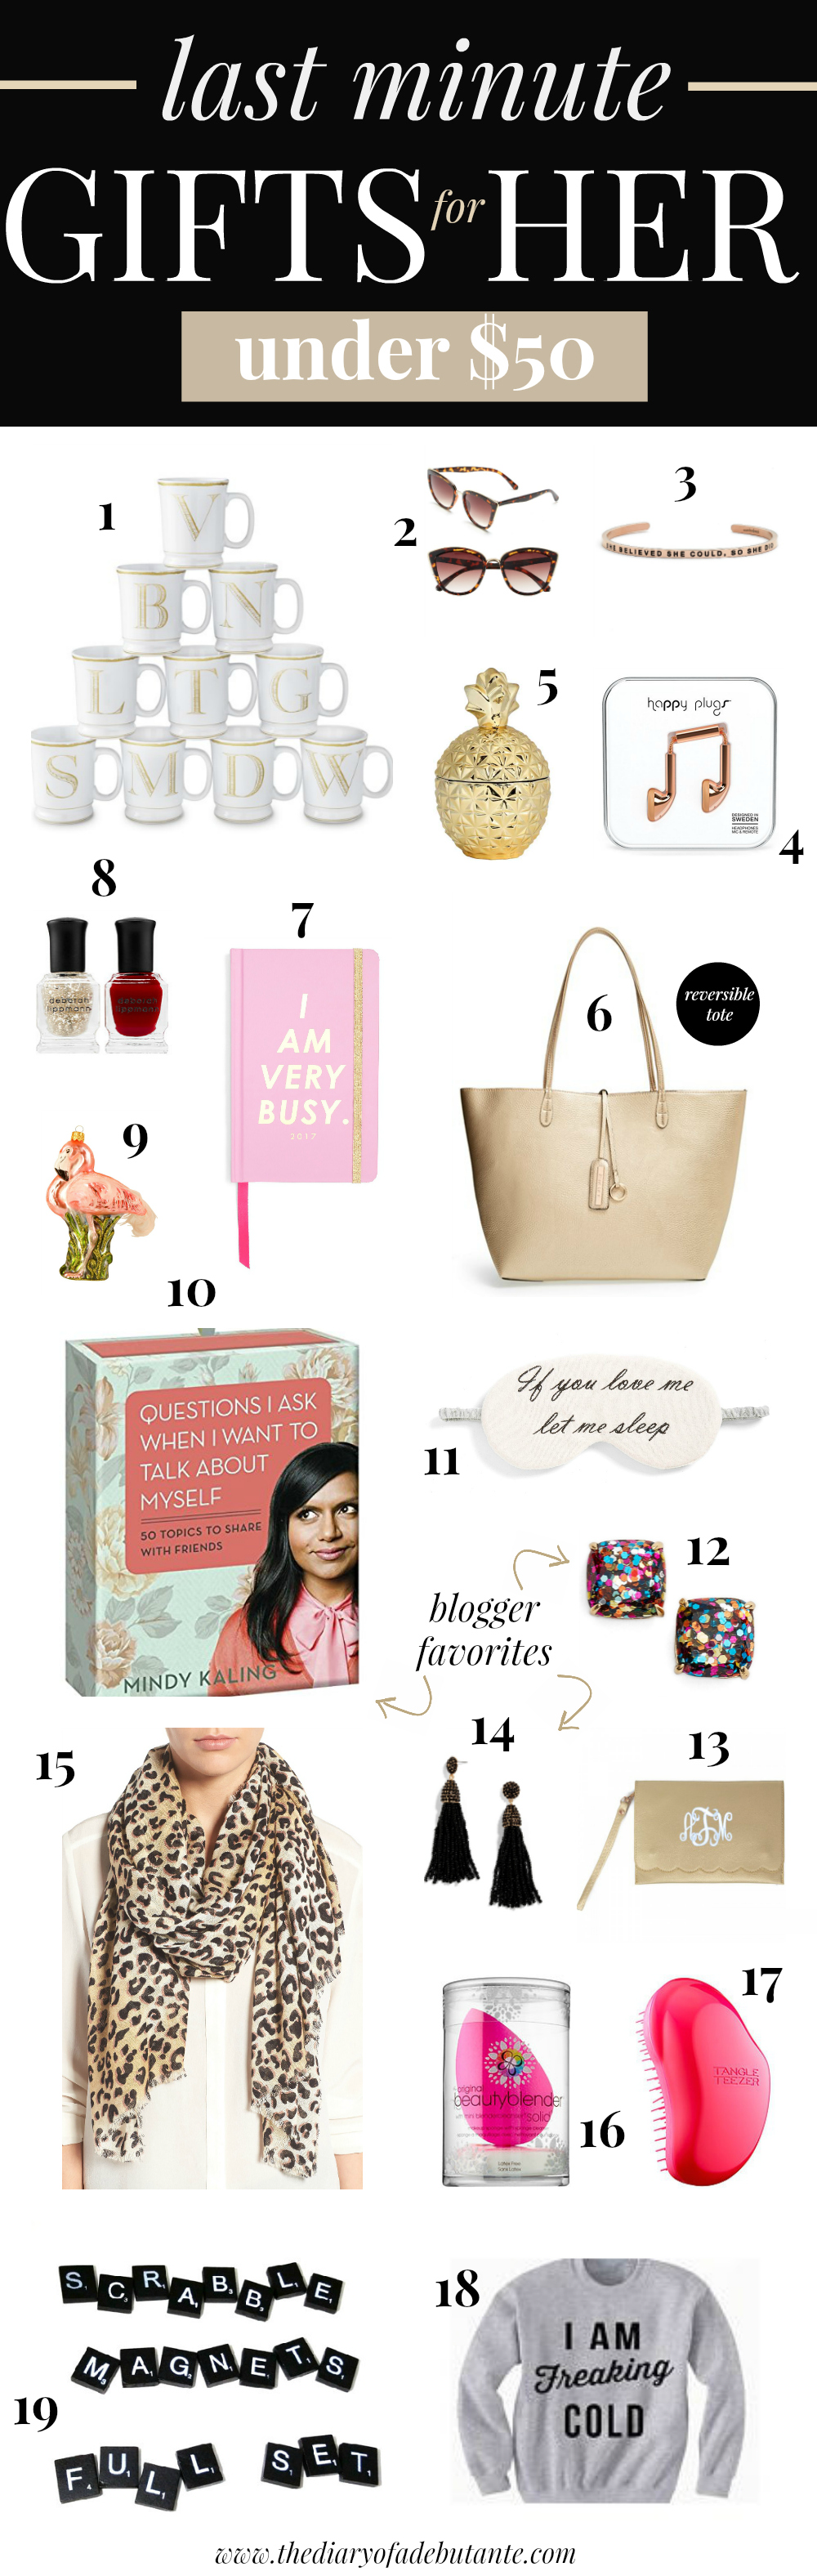 Last minute gifts for her under $50